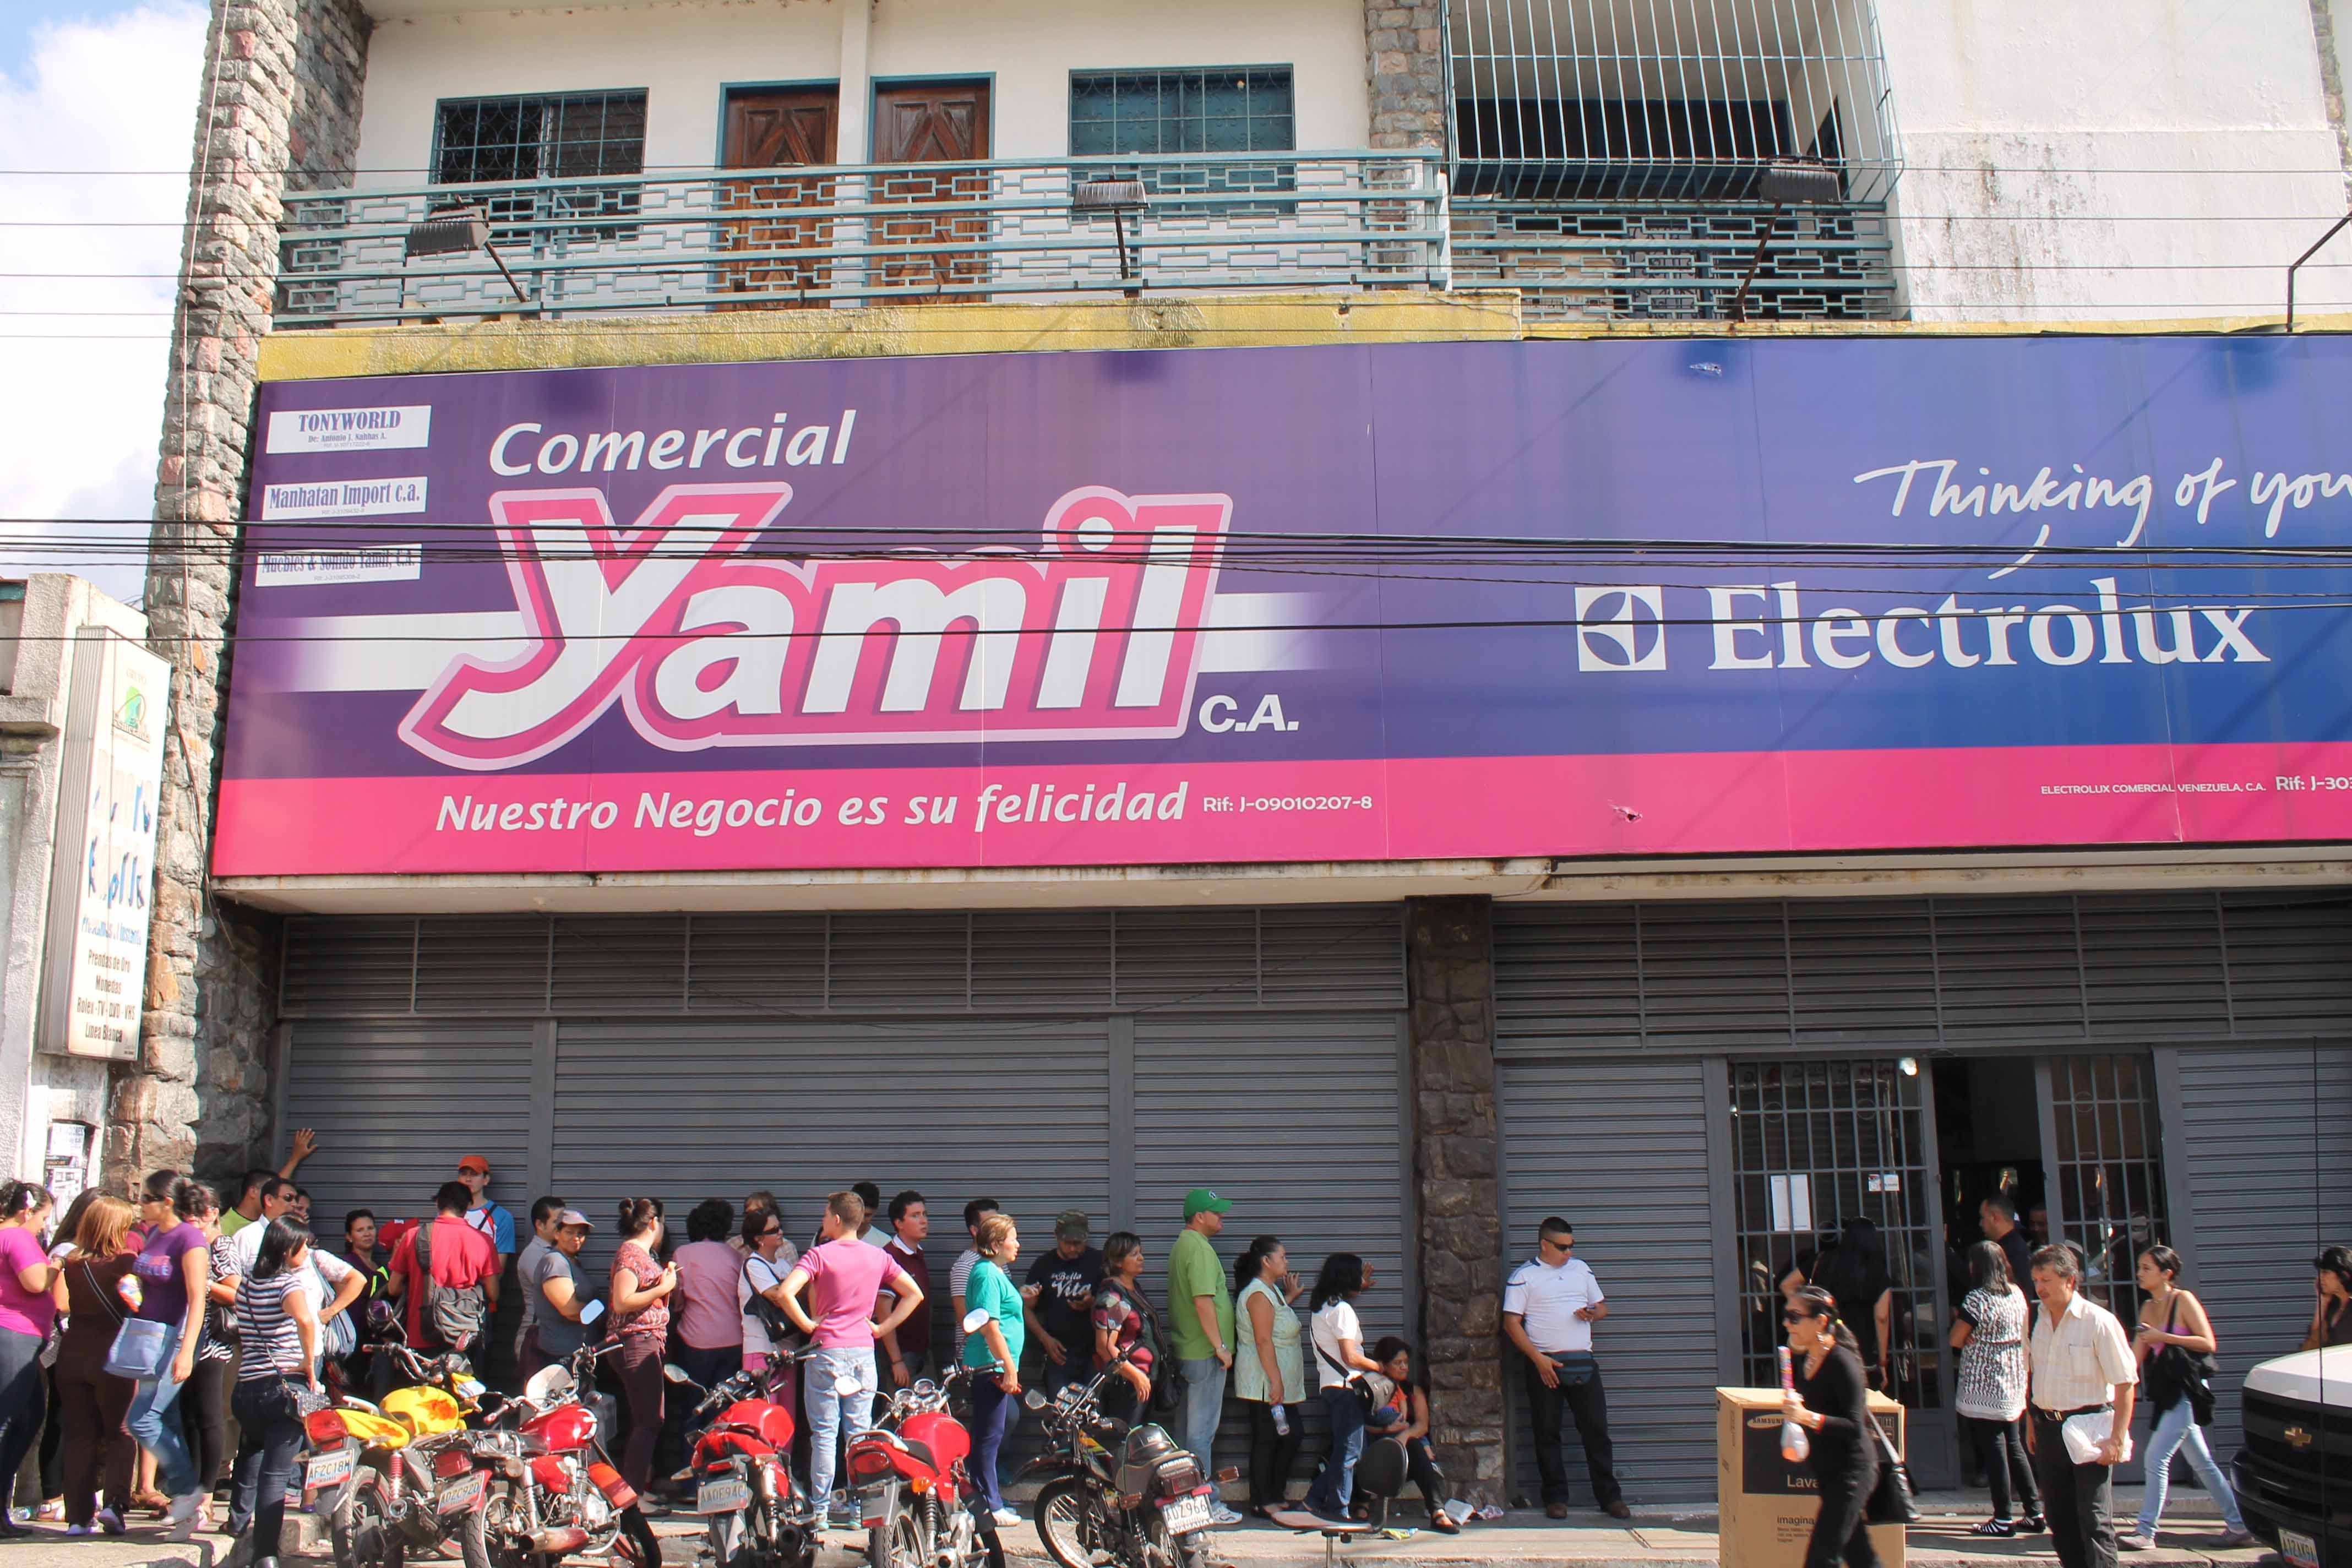 High Quality Citizens Queuing Outside Electronics Store Yamil Last Saturday In The Hope  Of Buying Reduced Price Goods (all Images Courtesy Of Harry Greatorex)